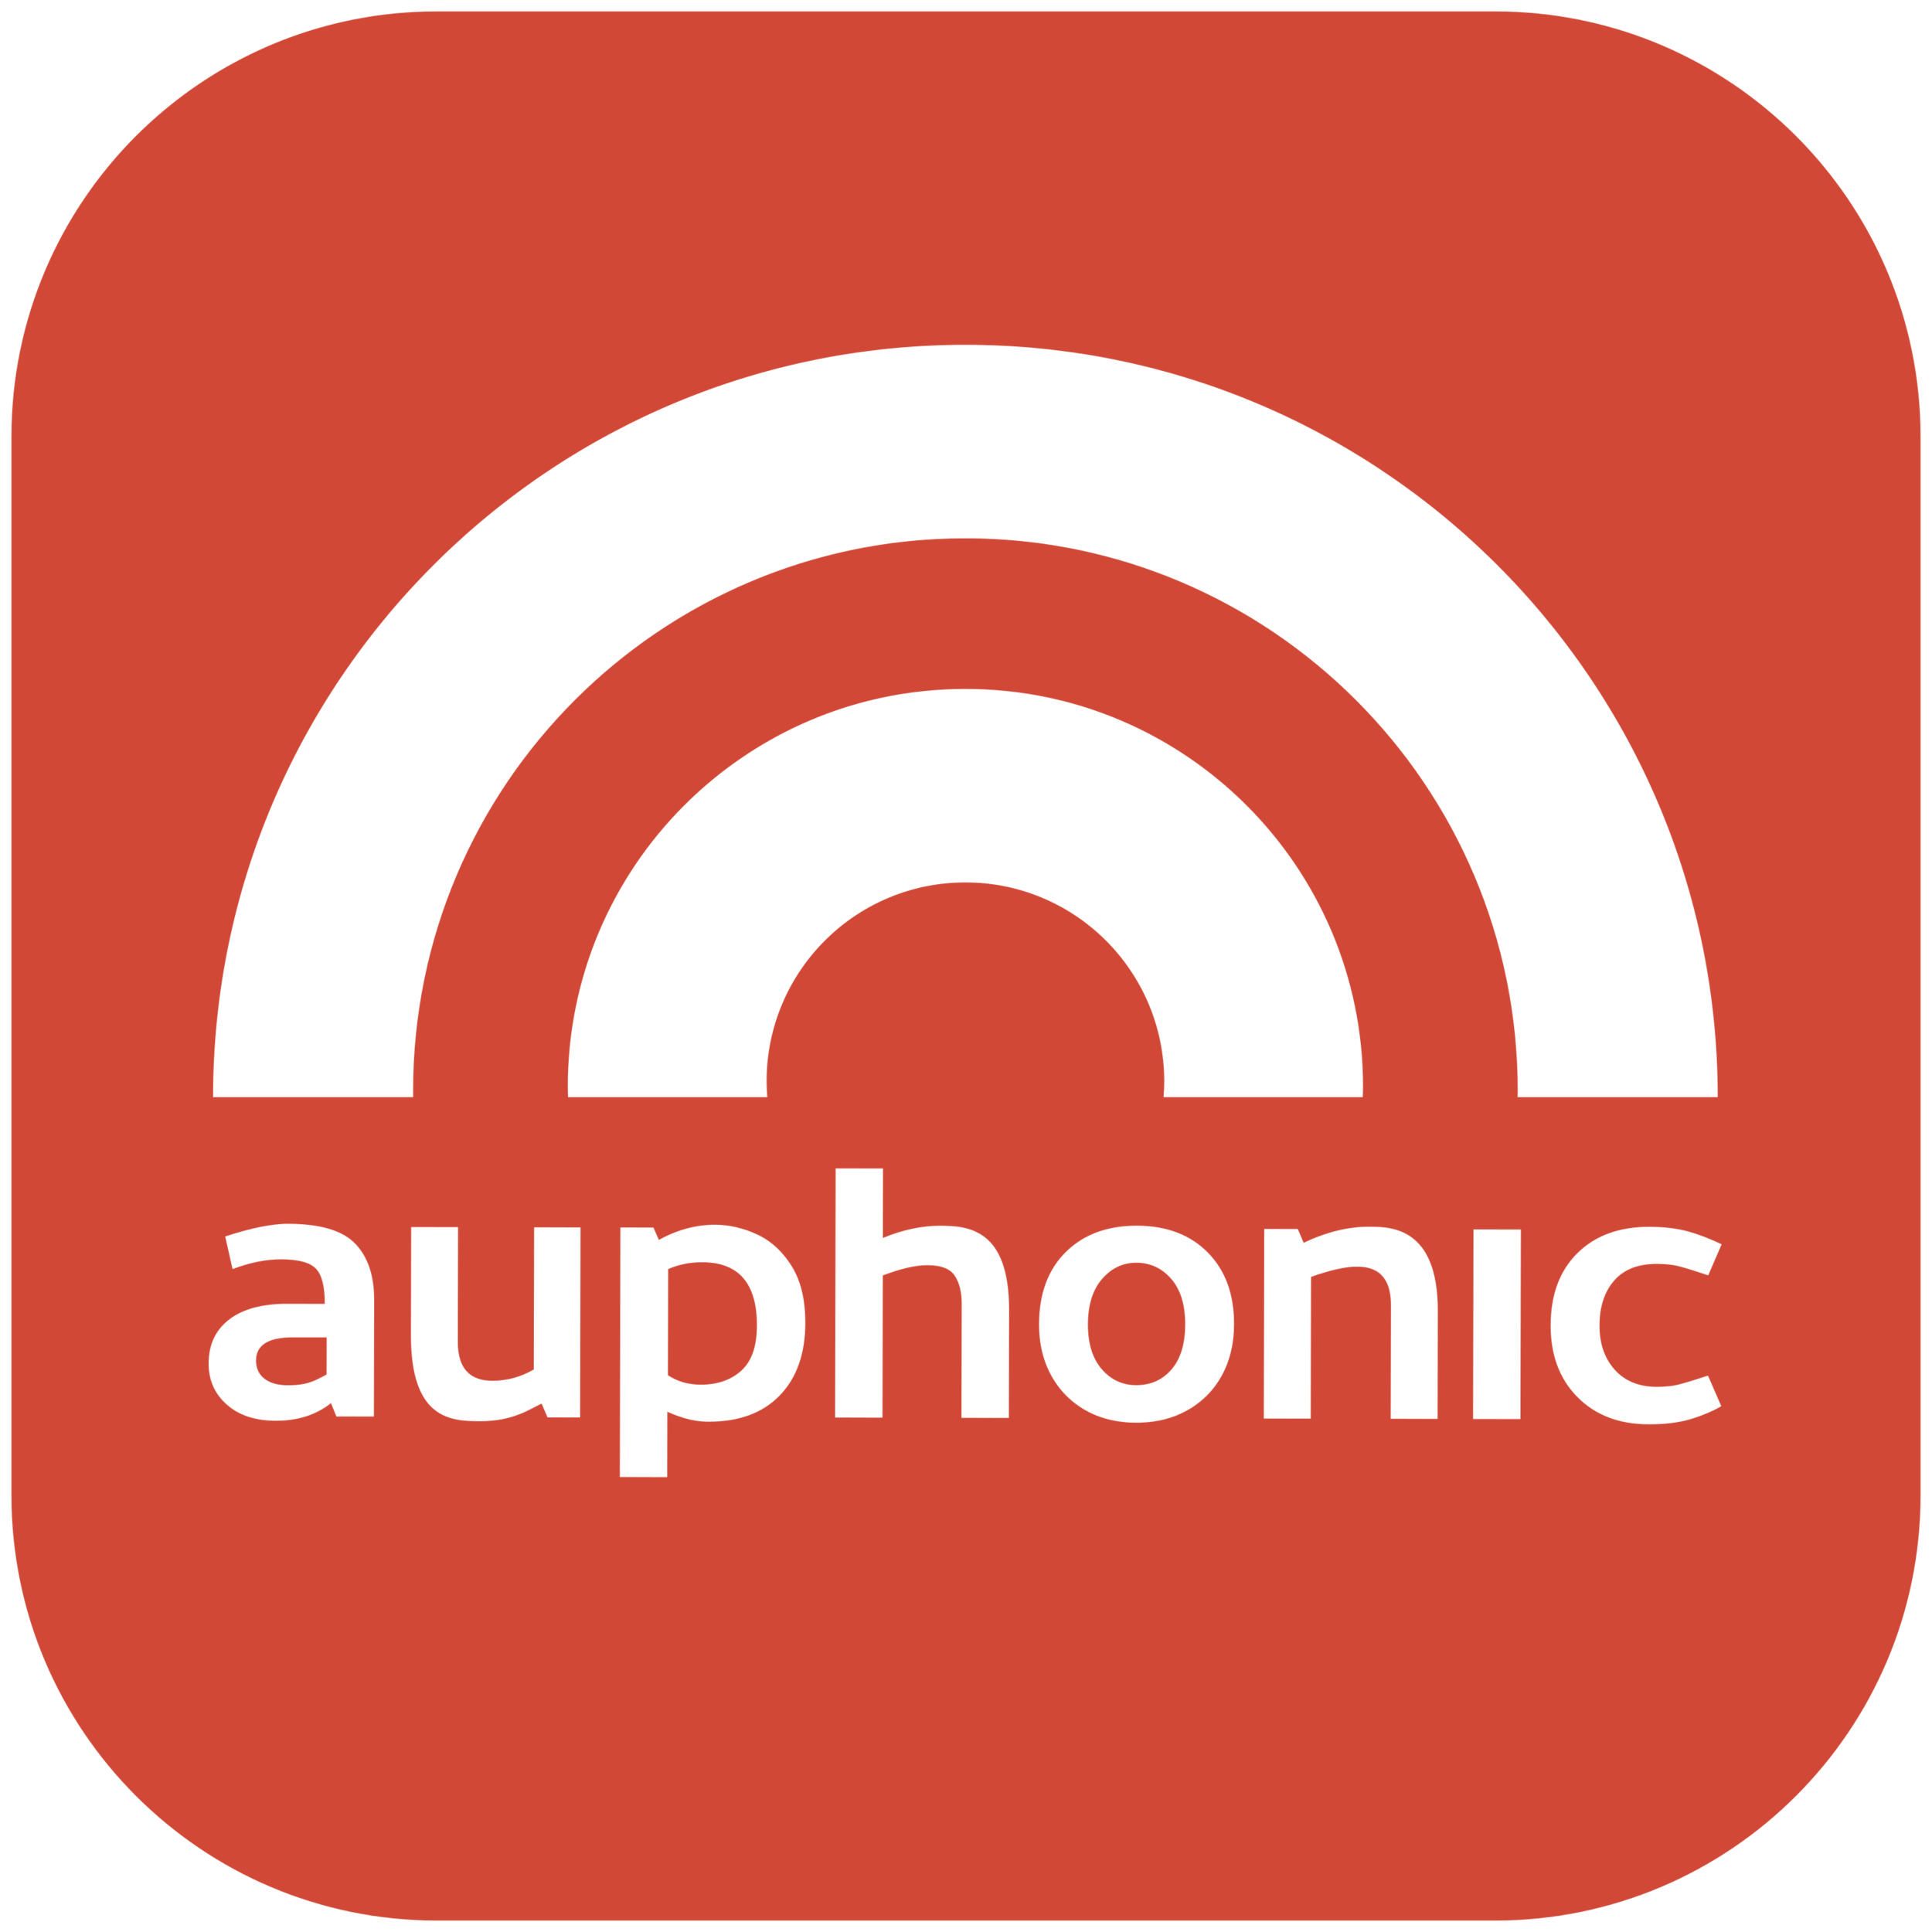 Auphonic automatic audio post production web service for podcasts, broadcasters, radio shows, movies and more